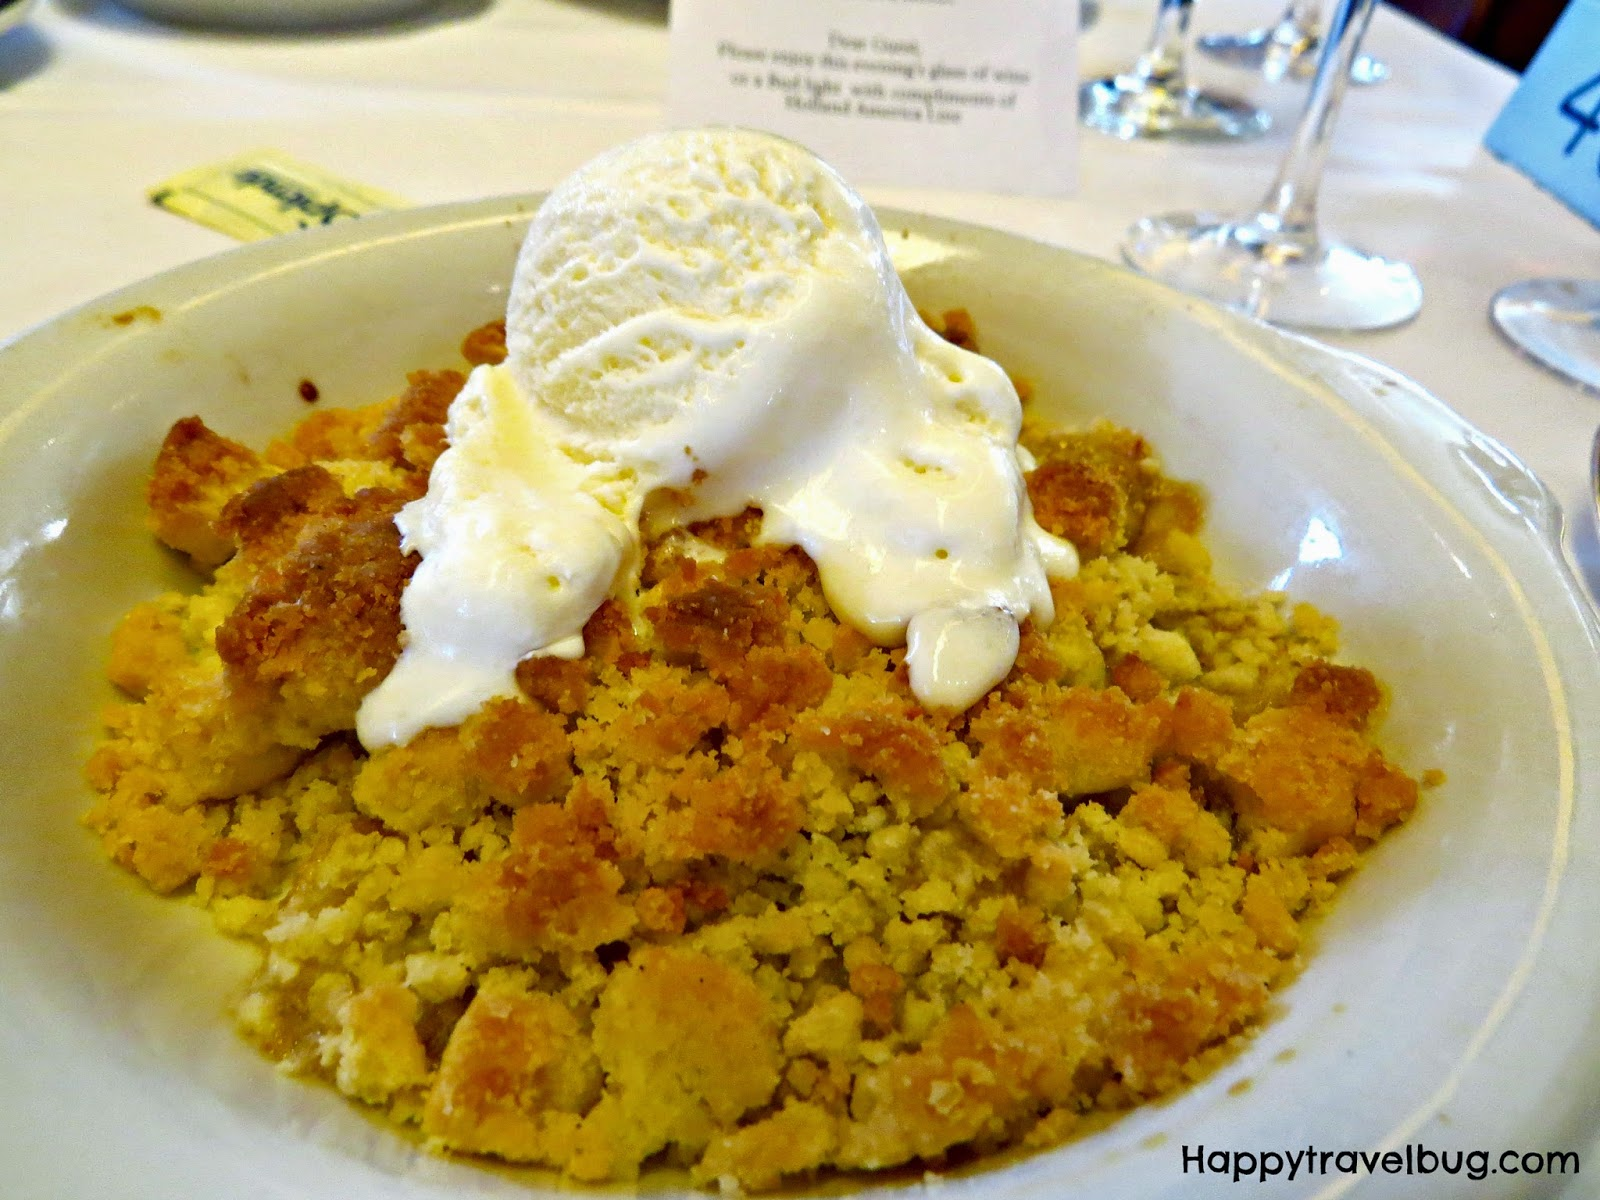 Pineapple crumble from dinner on our Holland America Cruise